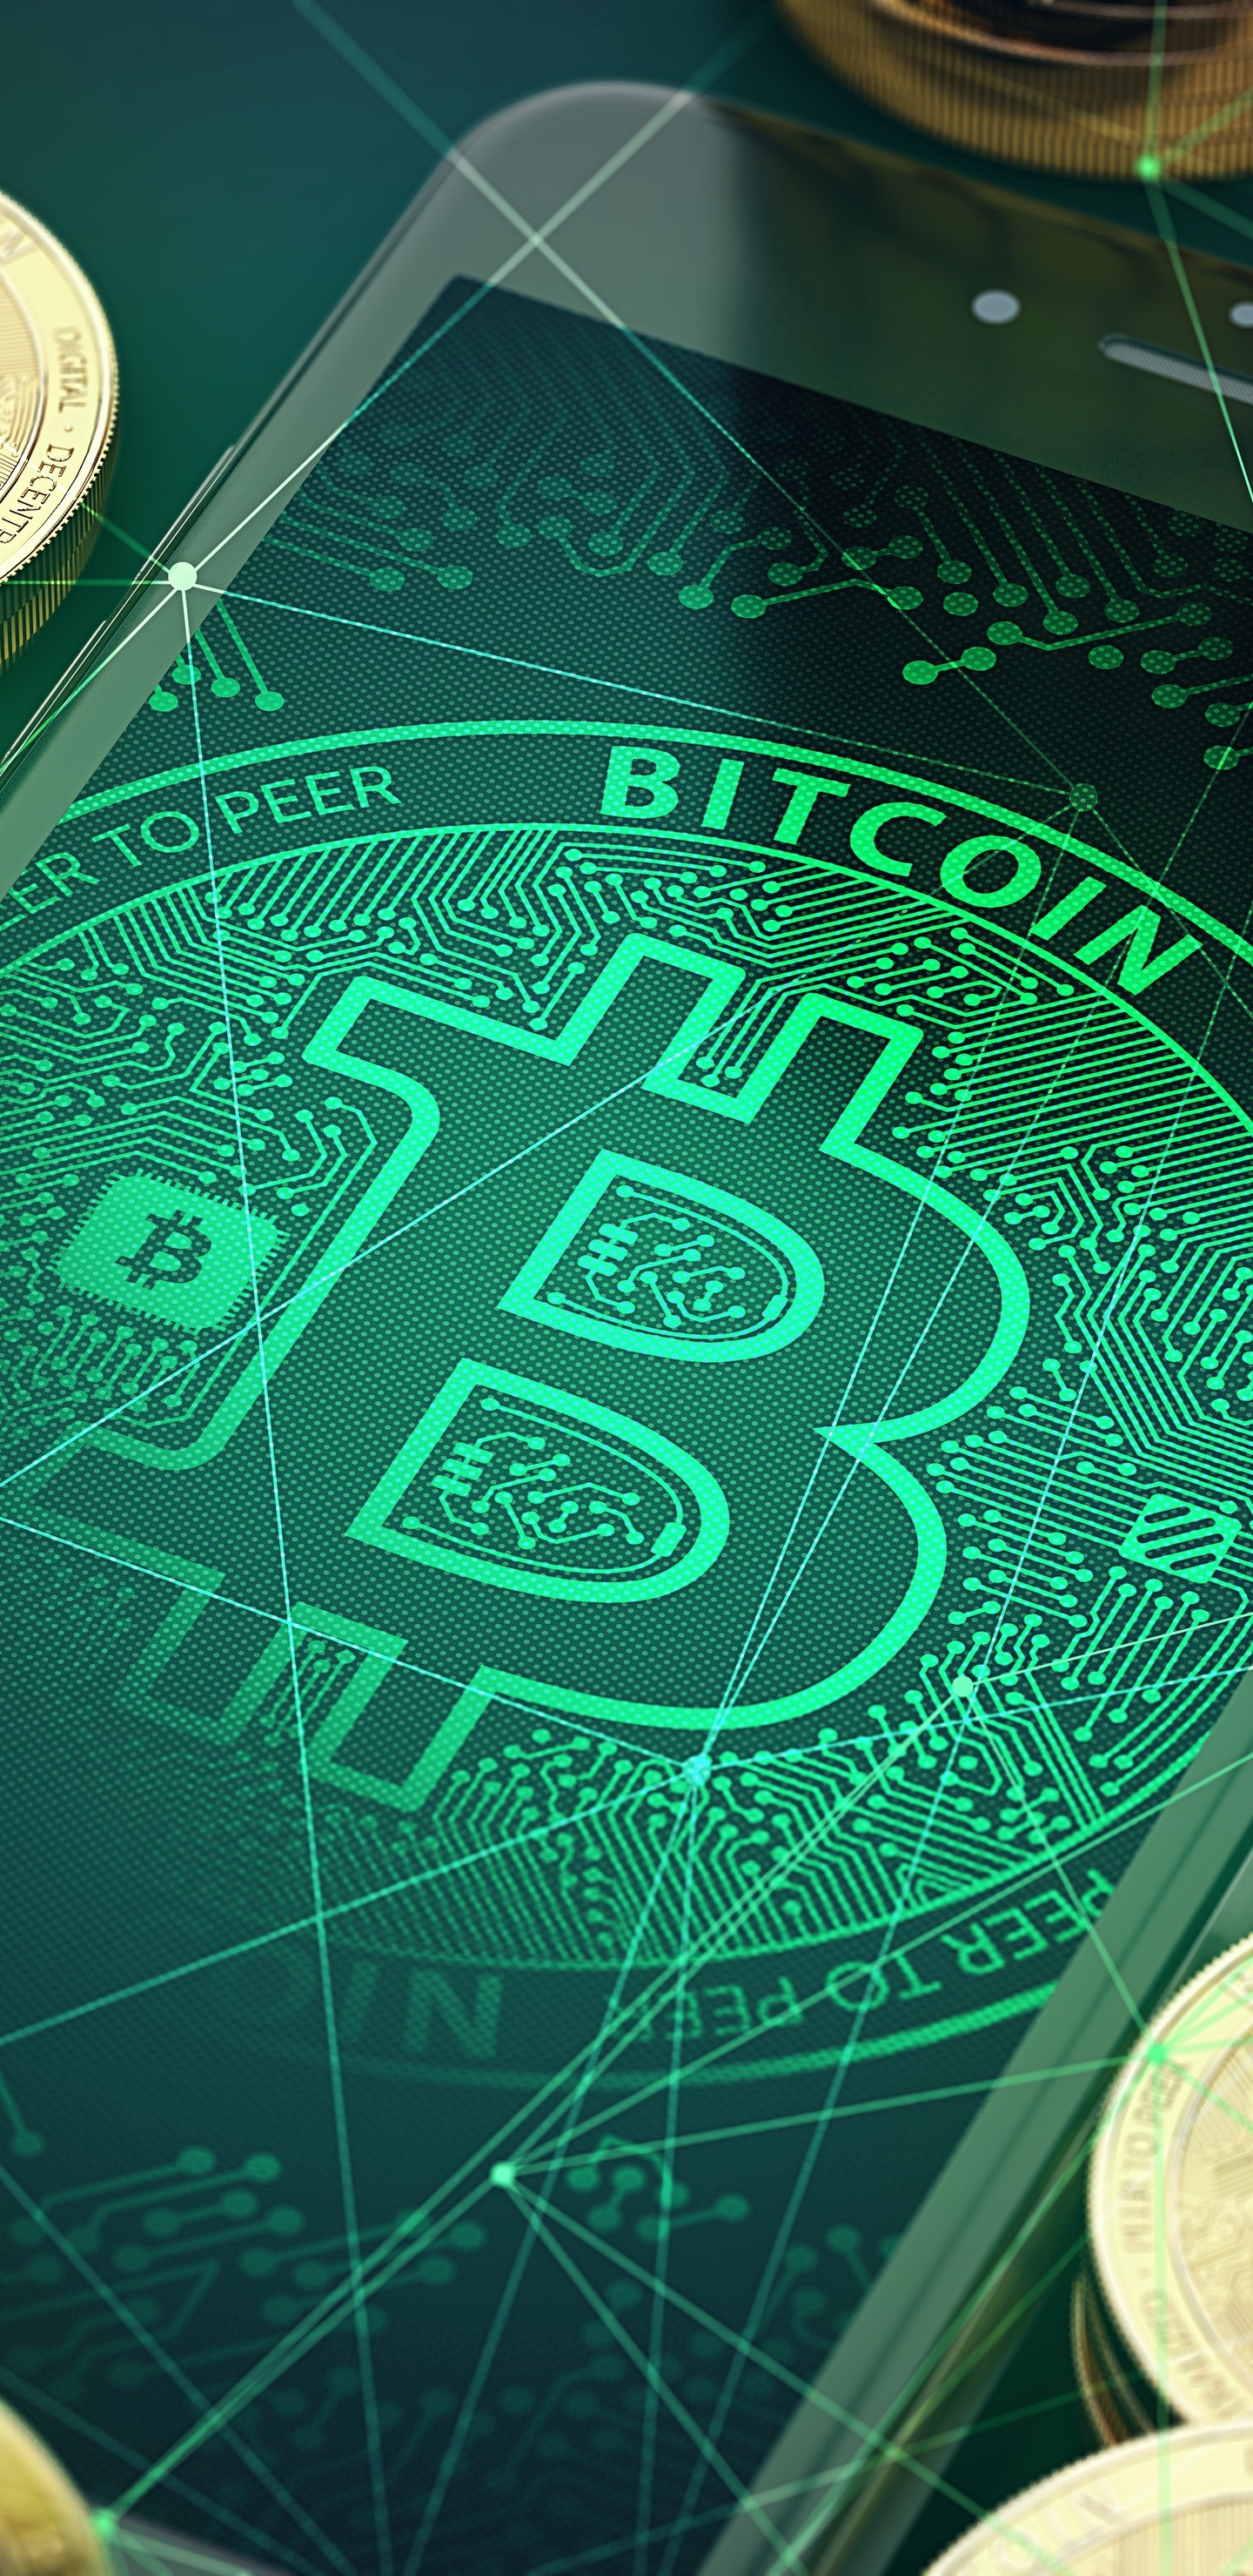 bitcoin-cryptocurrency-digital-currency-5k-cj.jpg